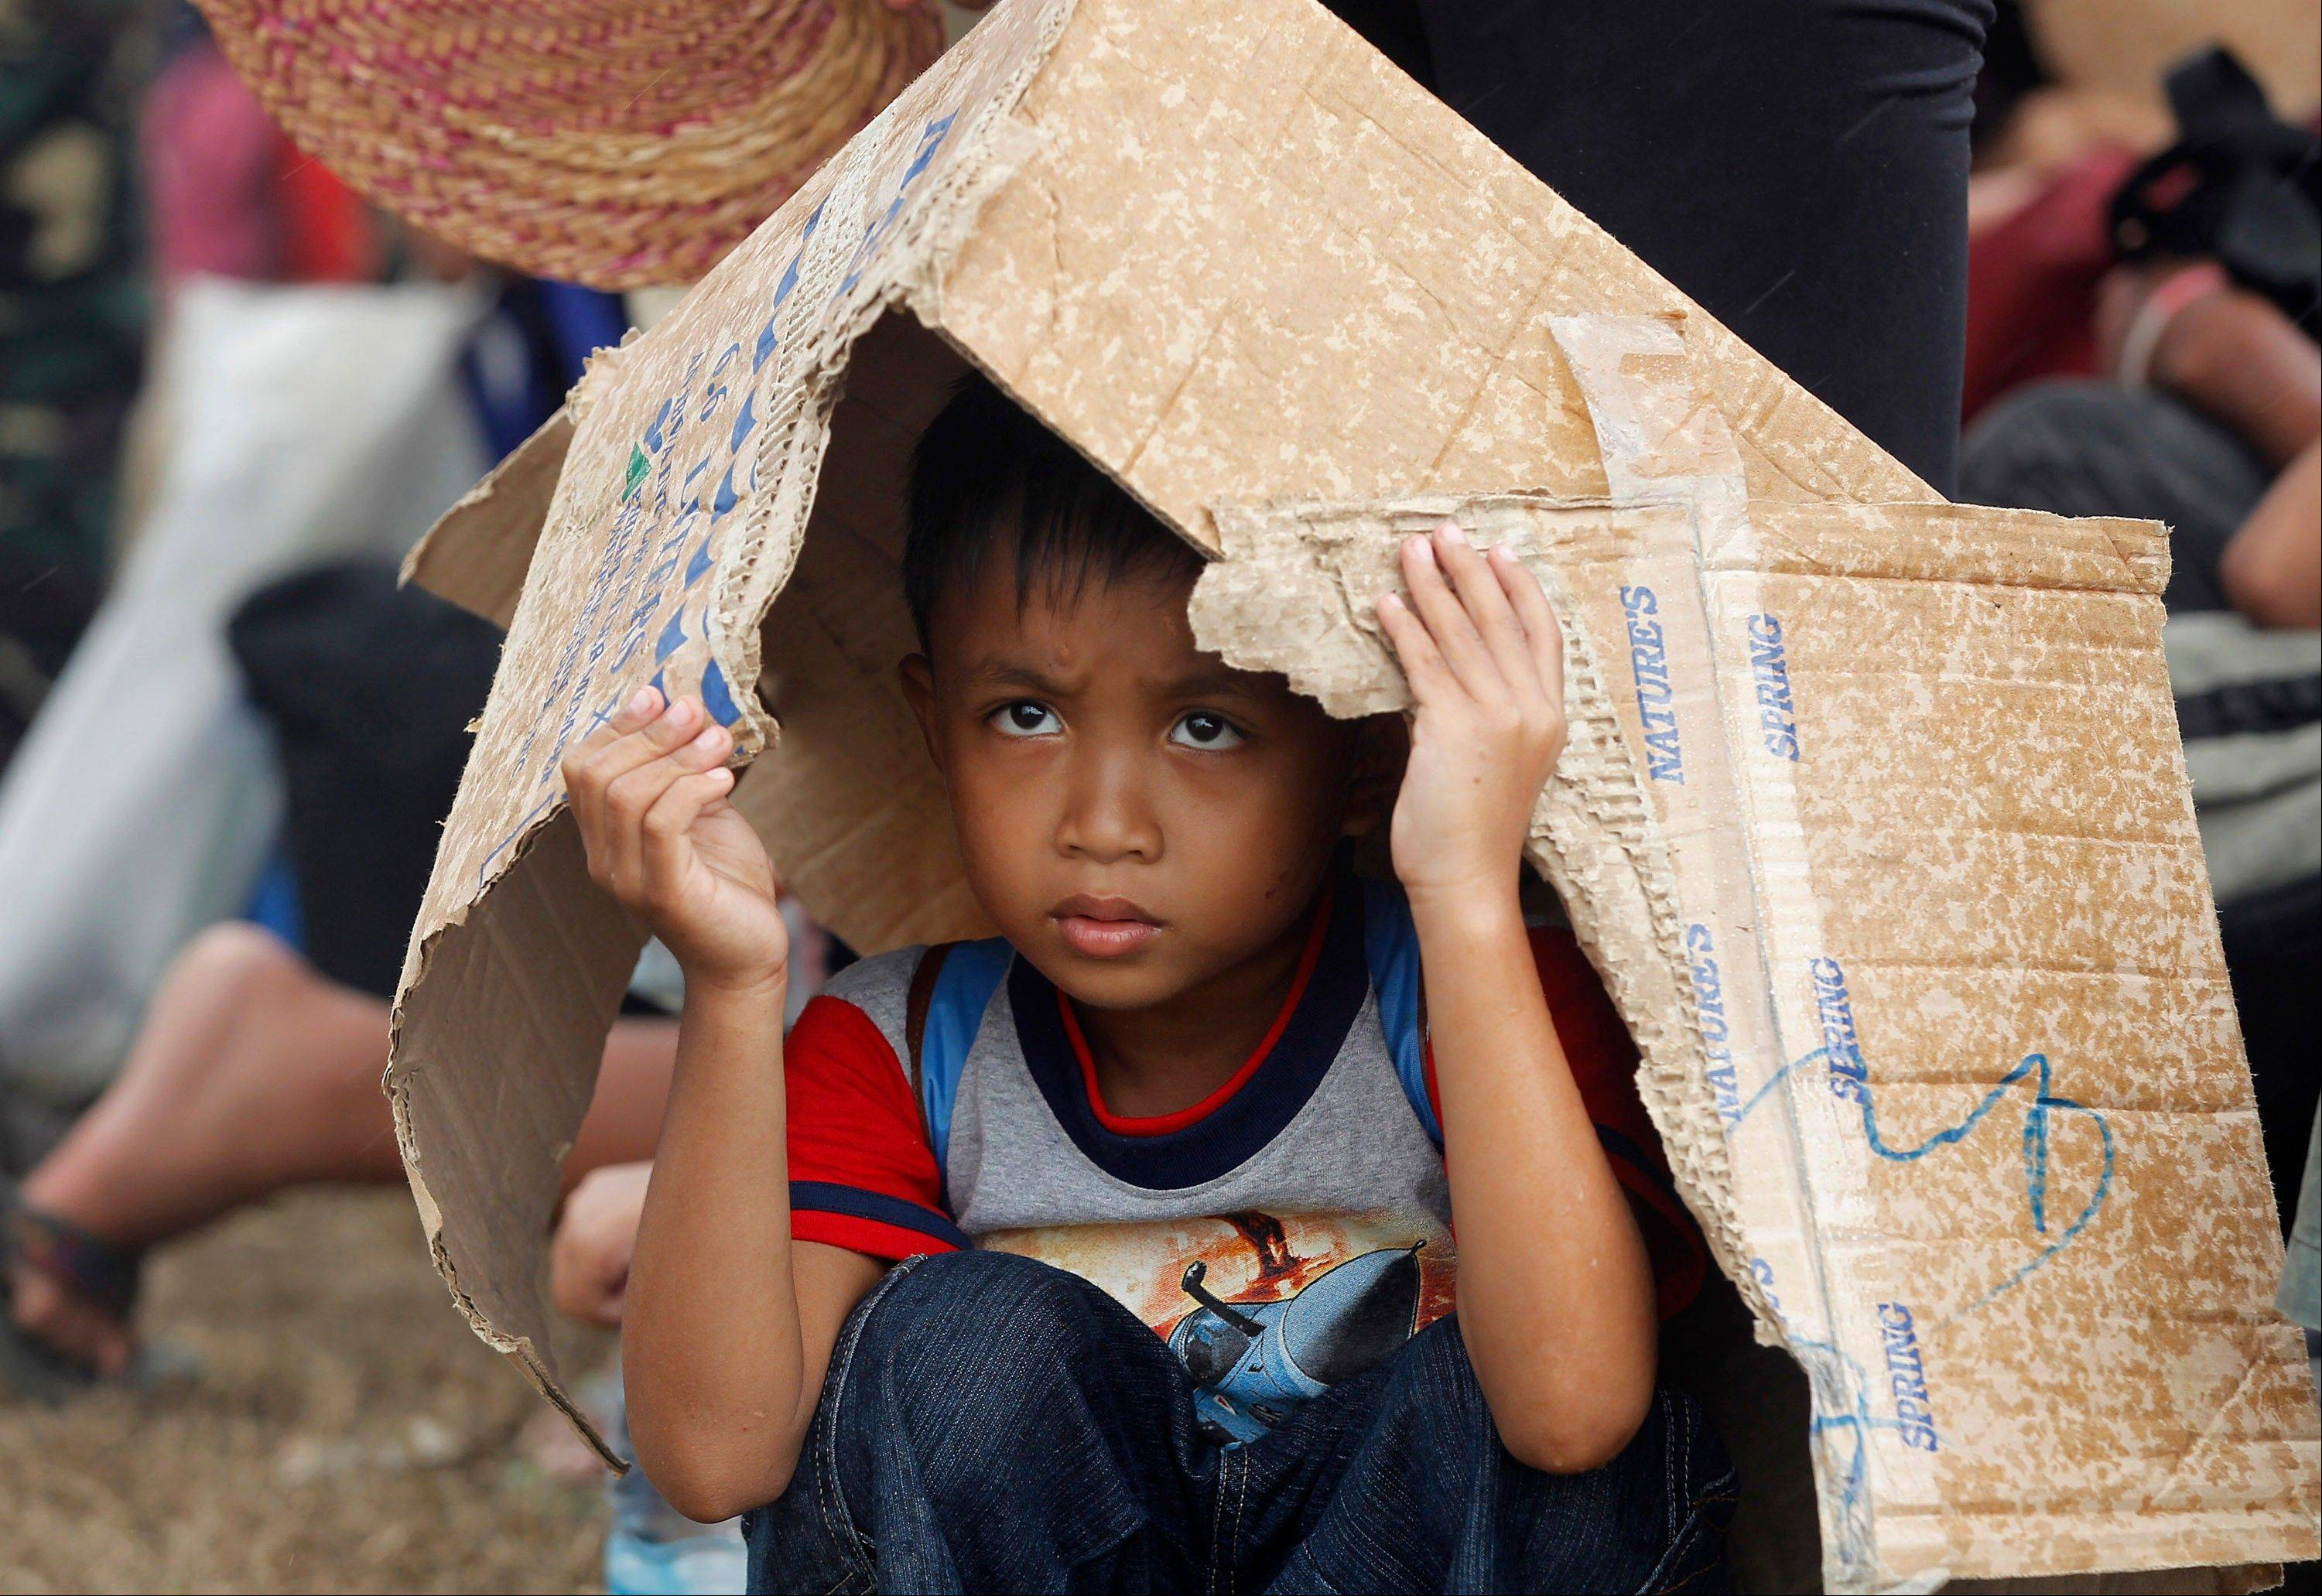 A young boy shields himself from the rain while waiting for an evacuation flight at the airport in Tacloban, central Philippines, Thursday, Nov. 14, 2013.